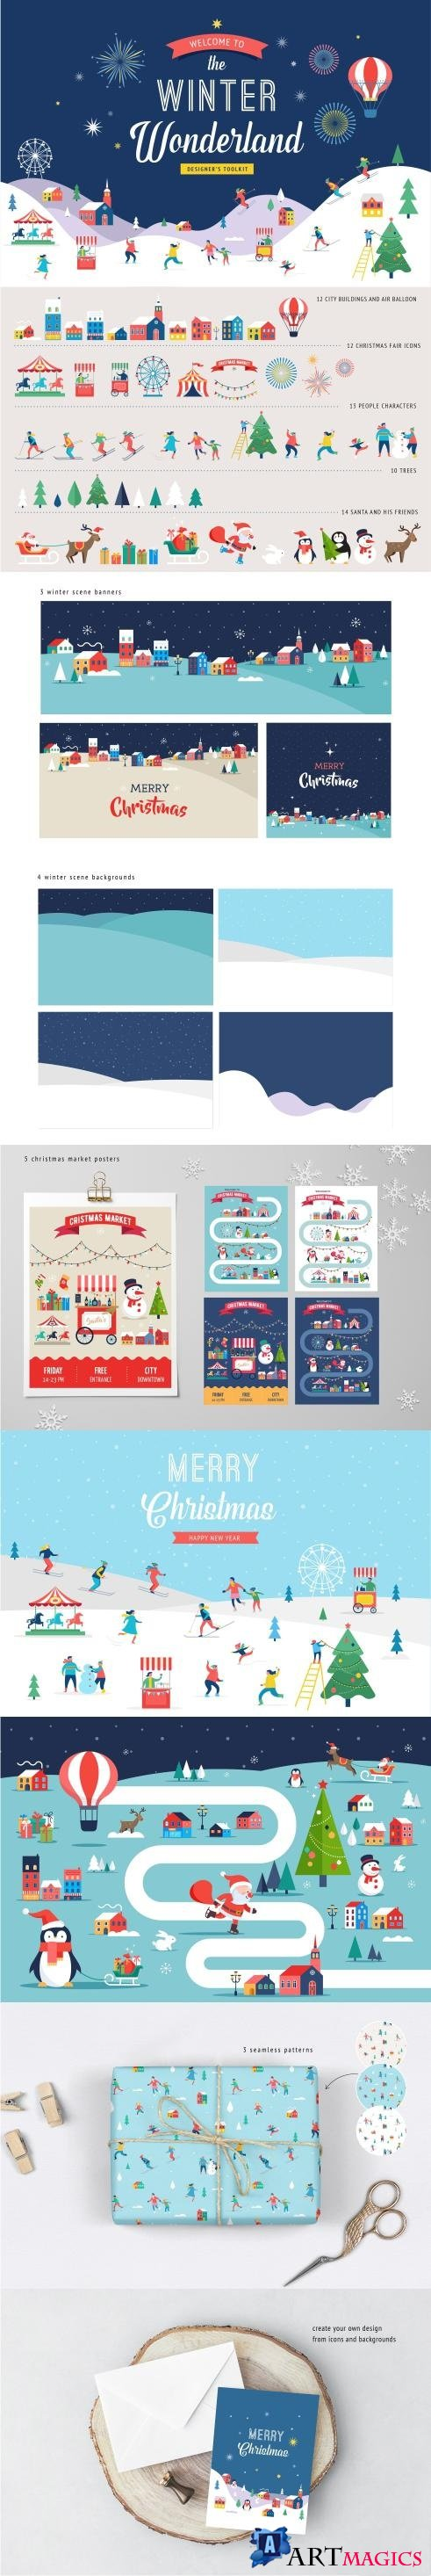 Winter Wonderland Designer's Toolkit - 2066736